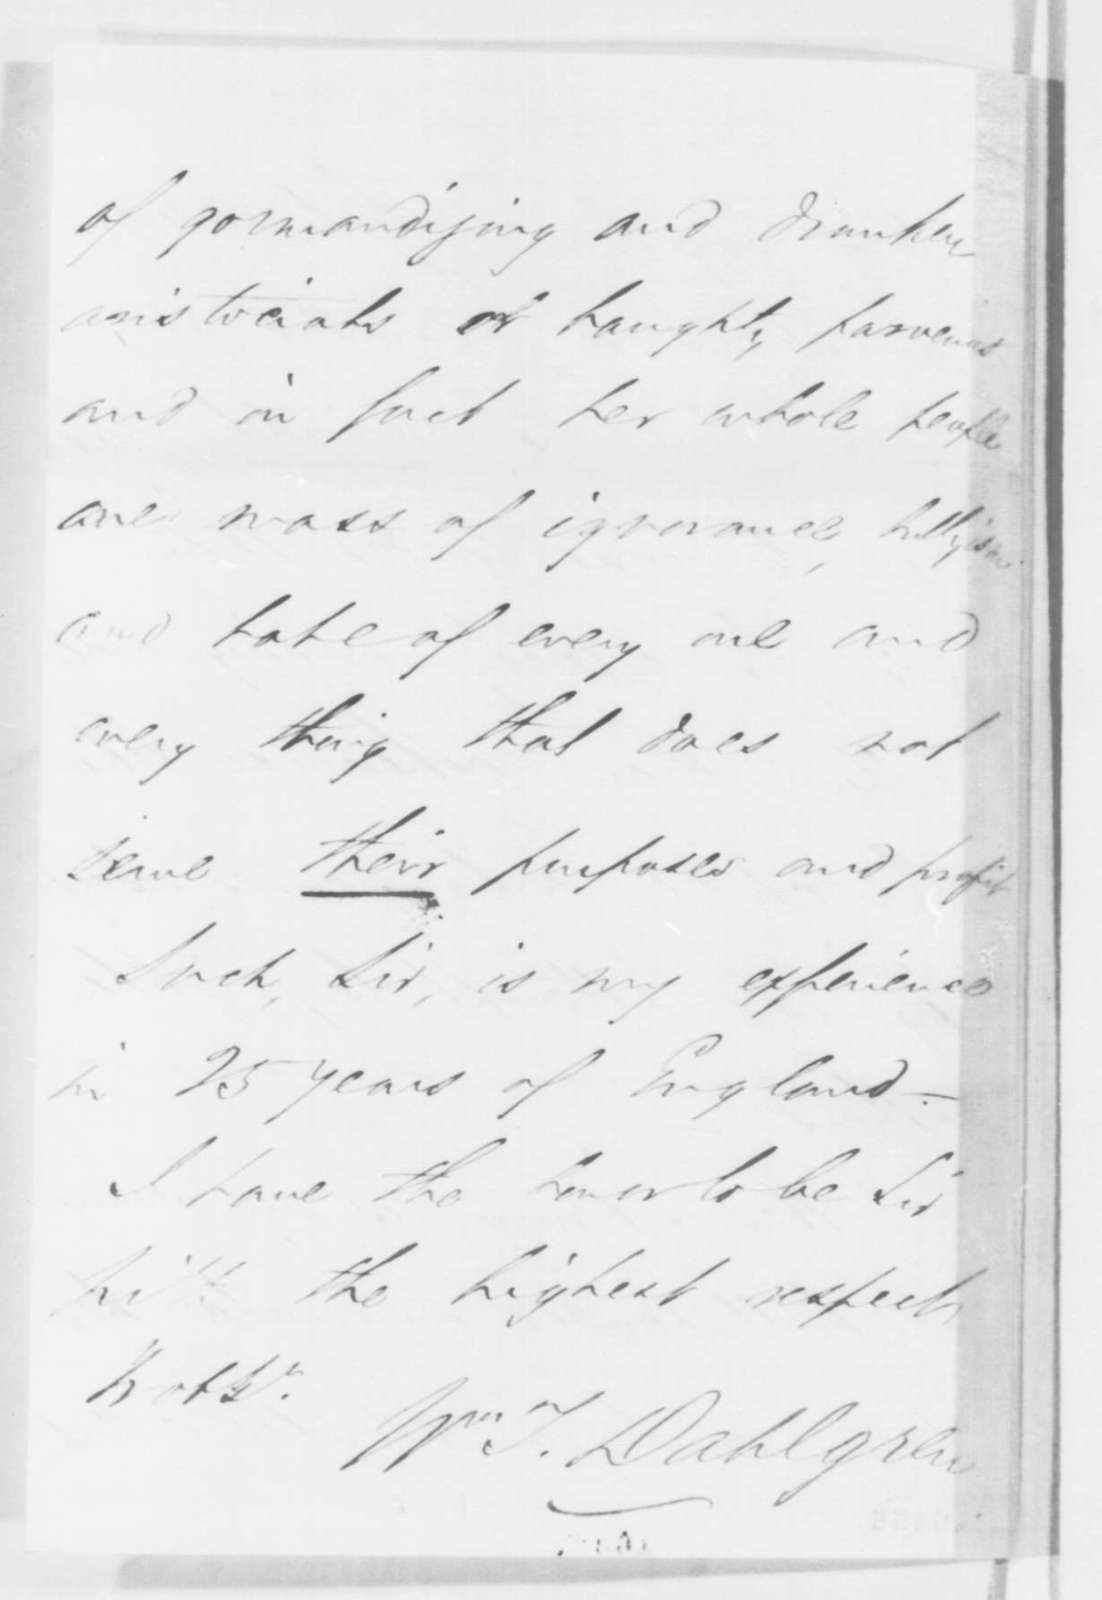 William t dahlgren to abraham lincoln thursday june 12 1862 relations with 8 1600